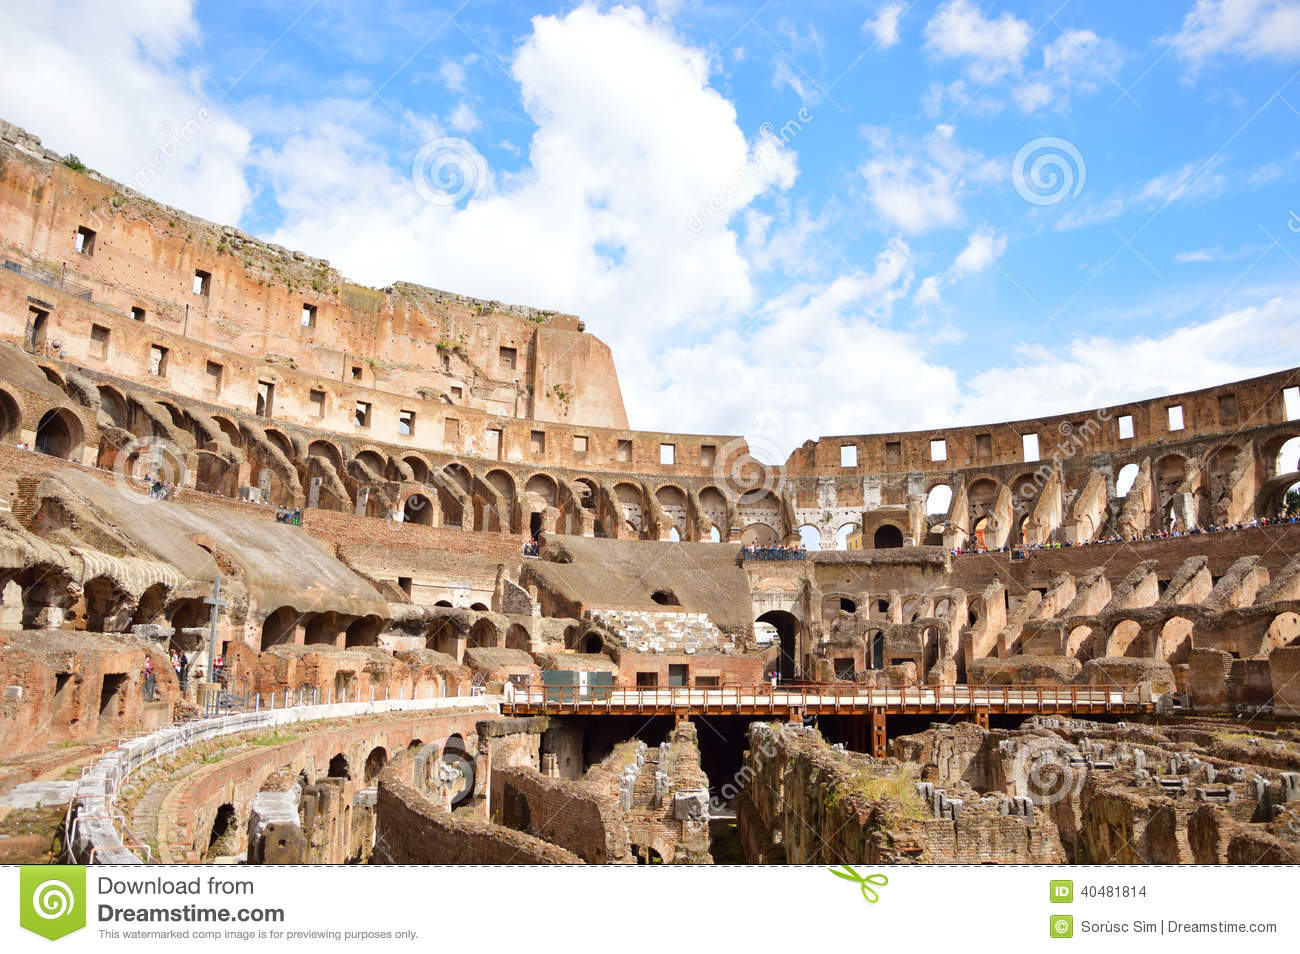 how to draw the inside of the colosseum